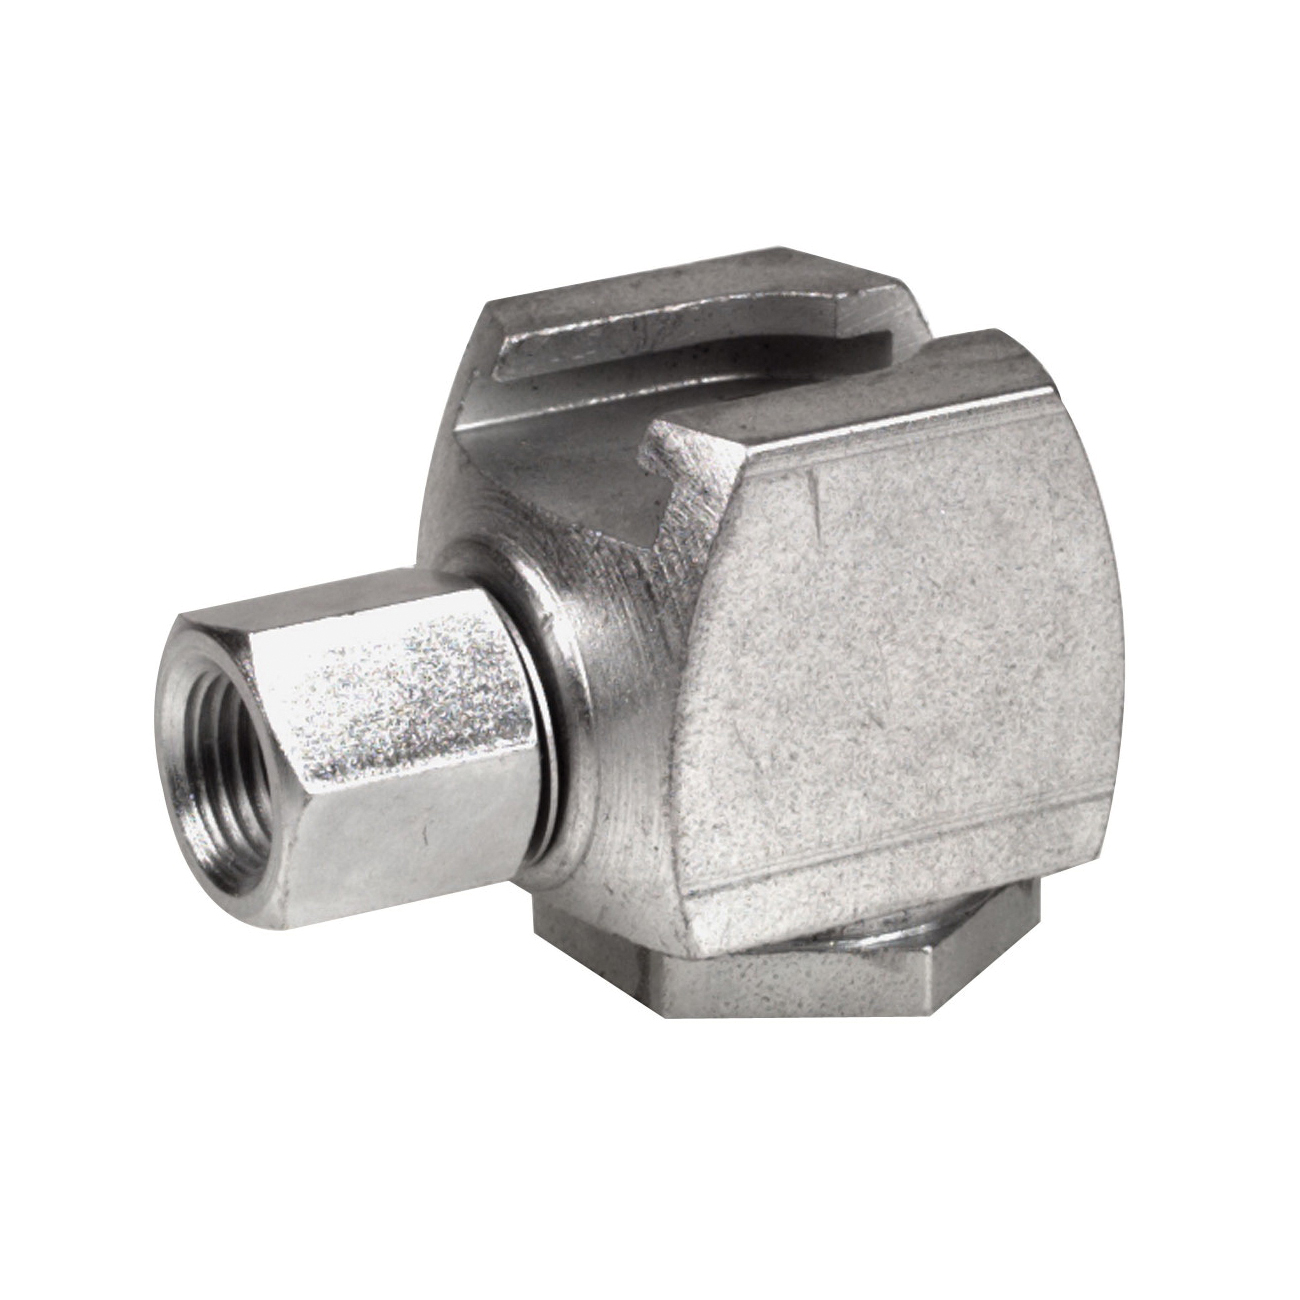 Alemite® 42030-A Standard Pull-On Button Head Coupler, 1/8 in Dia, FNPT